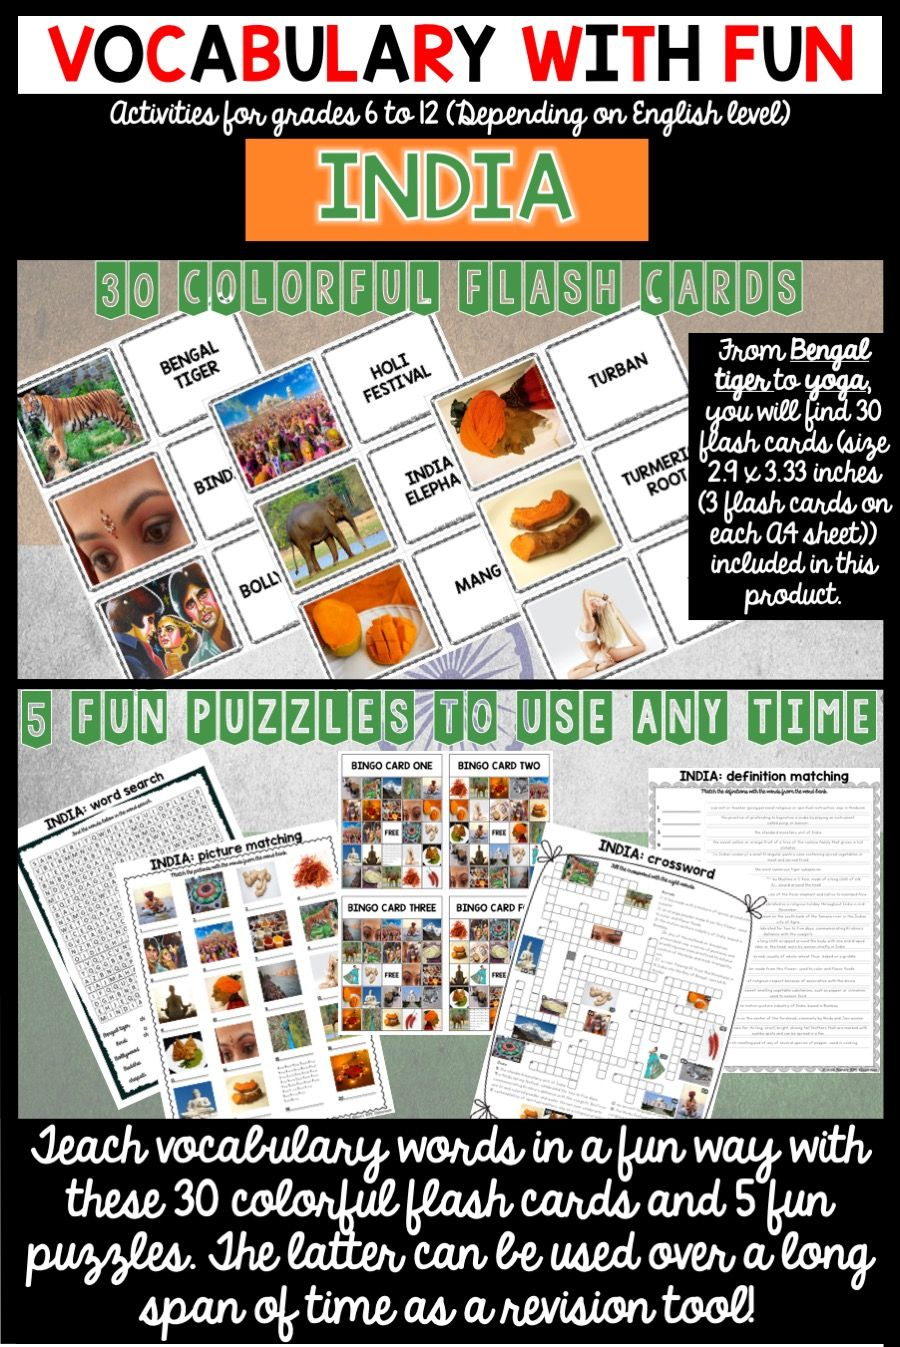 India 5 Word Puzzles And 30 Photo Flash Cards Flashcards Word Puzzles Vocabulary Words